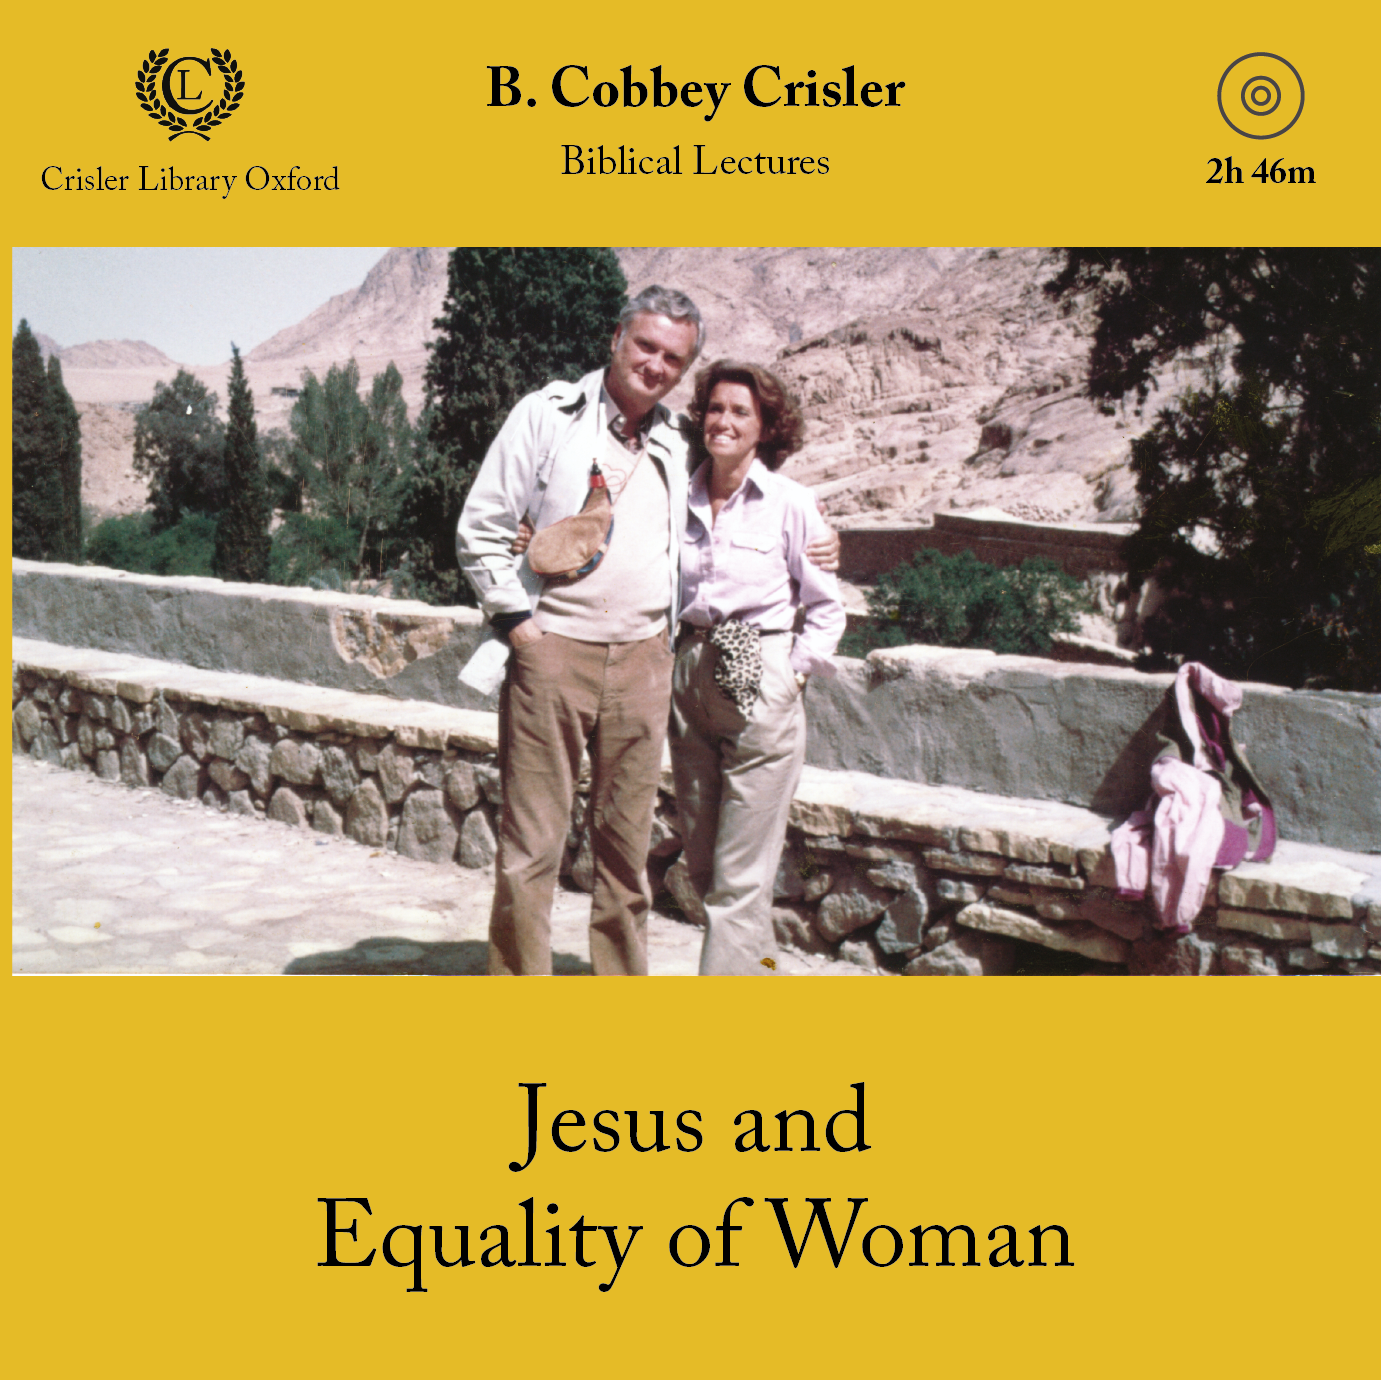 Jesus and Equality of Woman